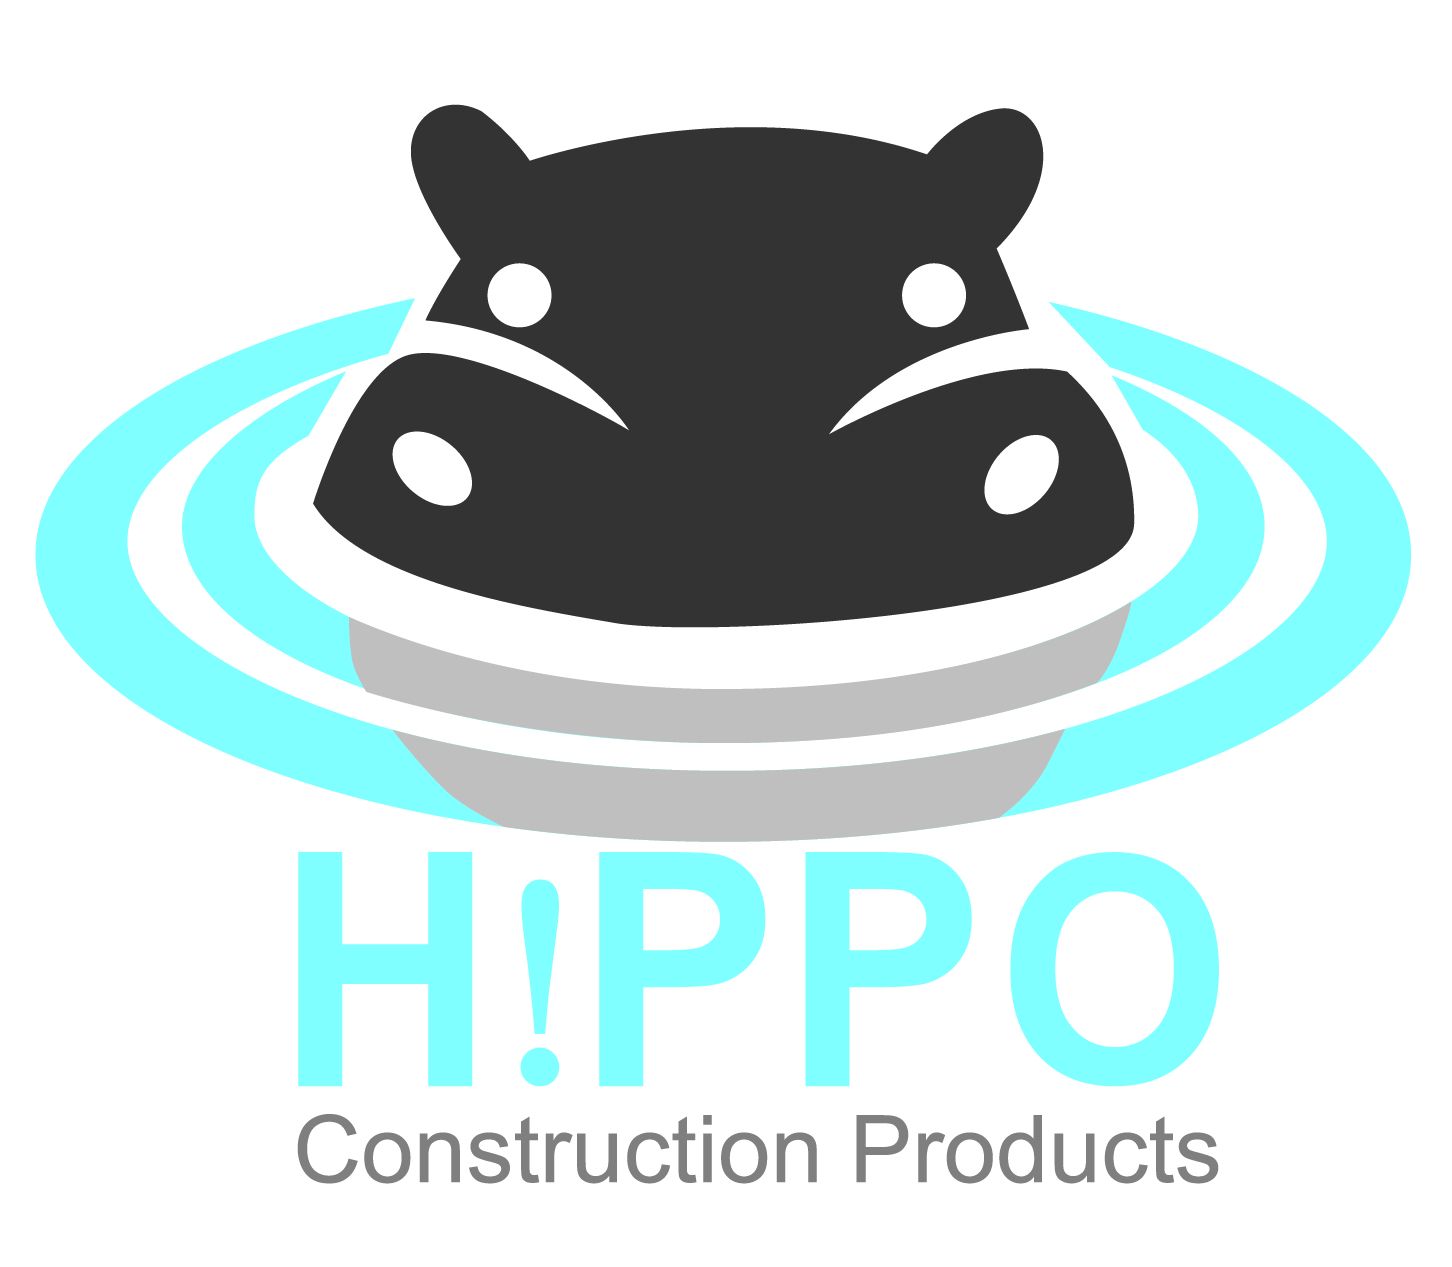 Drizoro - Construction Products